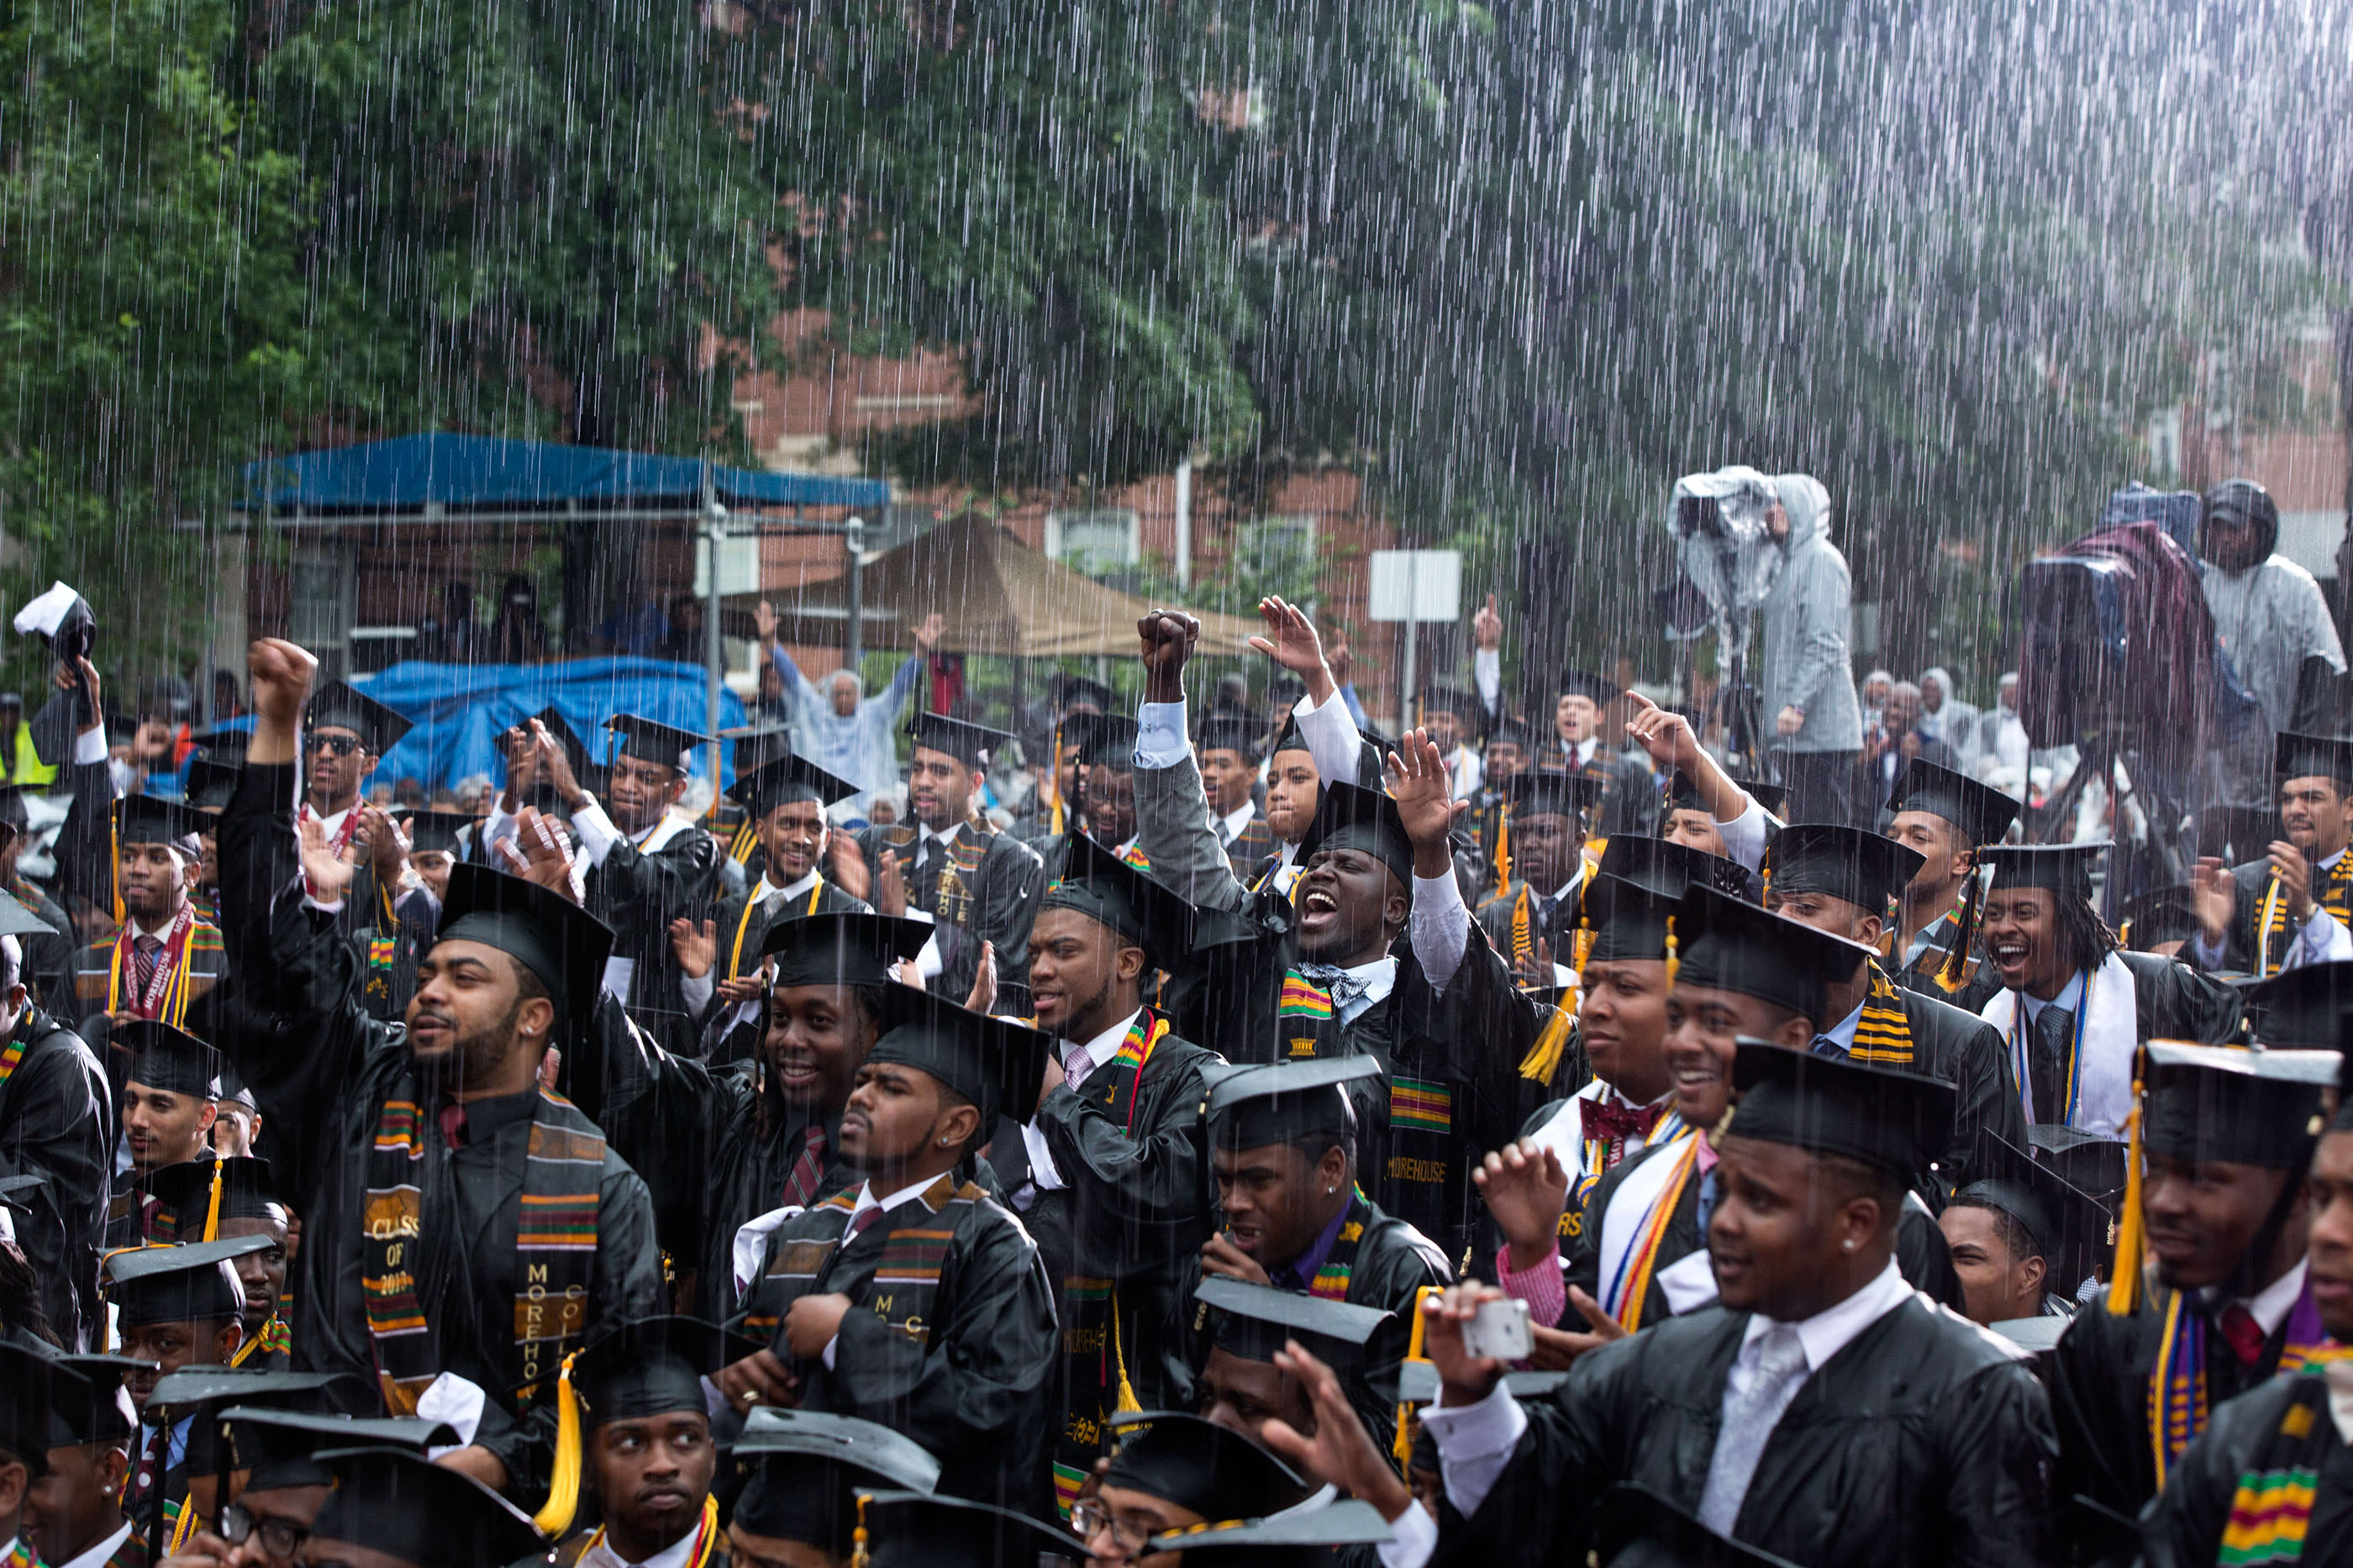 Georgia, May 19, 2013. Graduates cheering the President during a heavy downpour at Morehouse College in Atlanta. (Official White House Photo by Pete Souza)